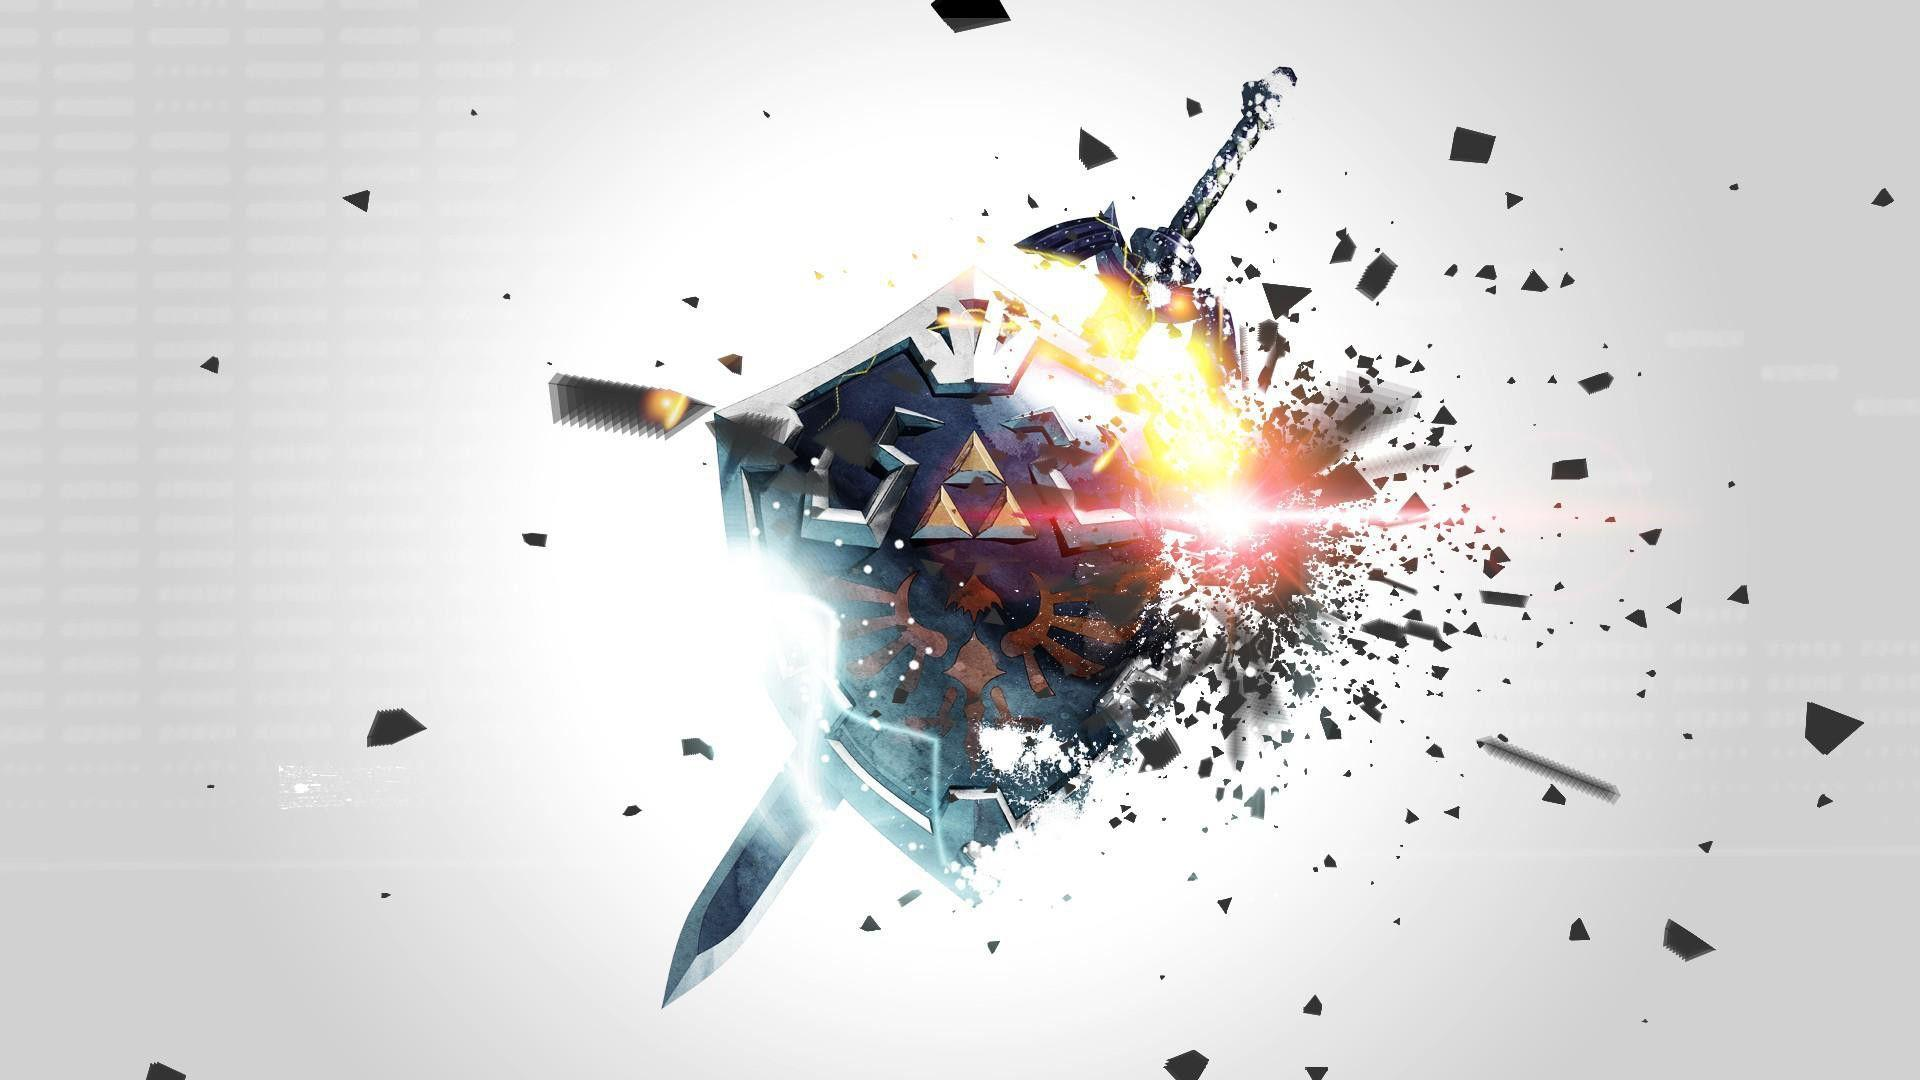 hd zelda wallpapers - photo #8